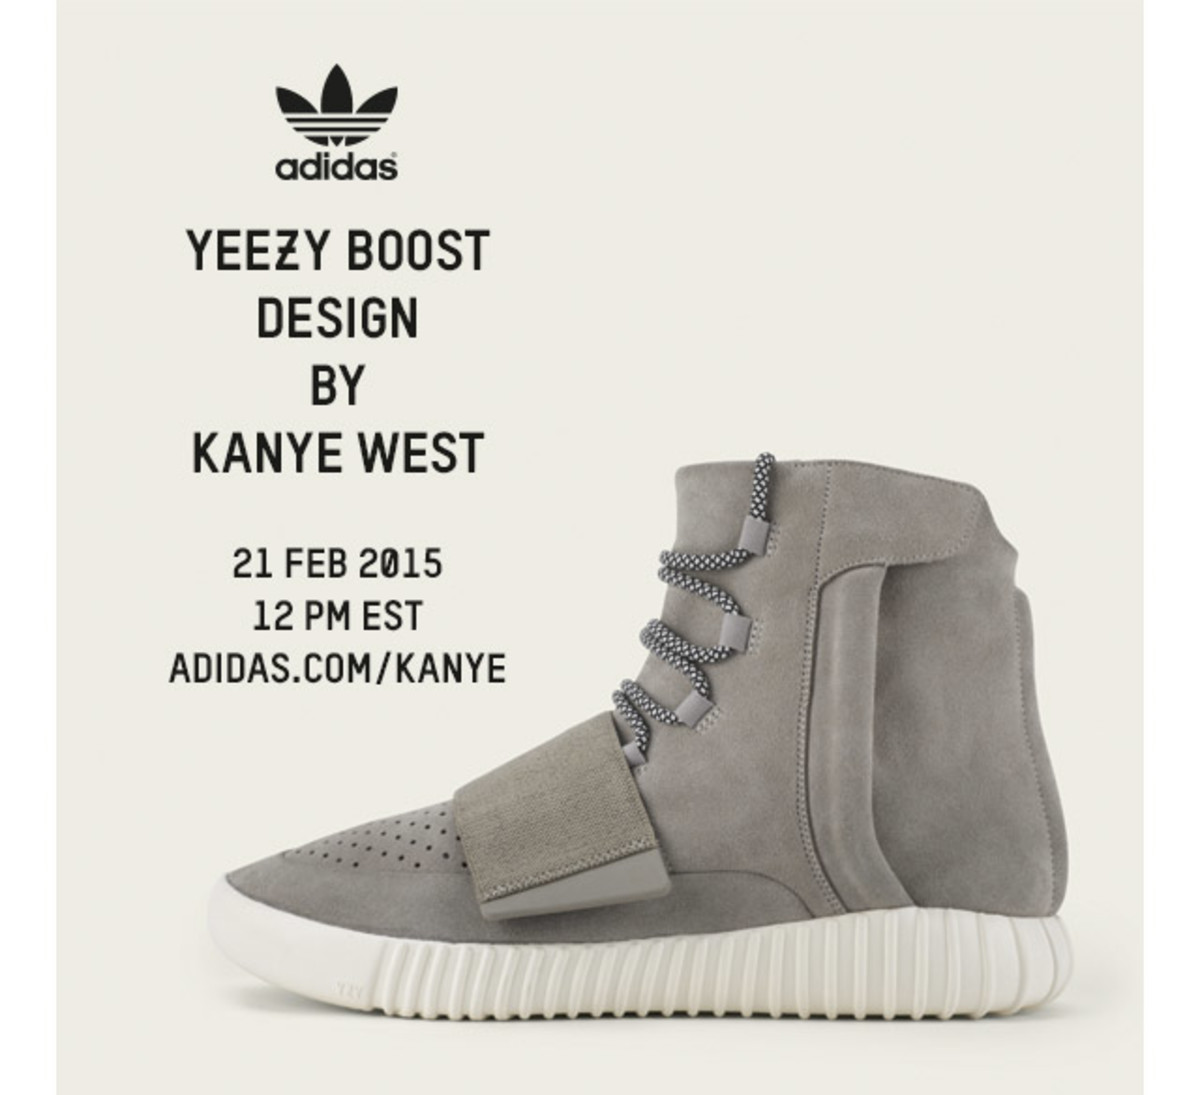 adidas-yeezy-boost-online-release-tomorrow-02